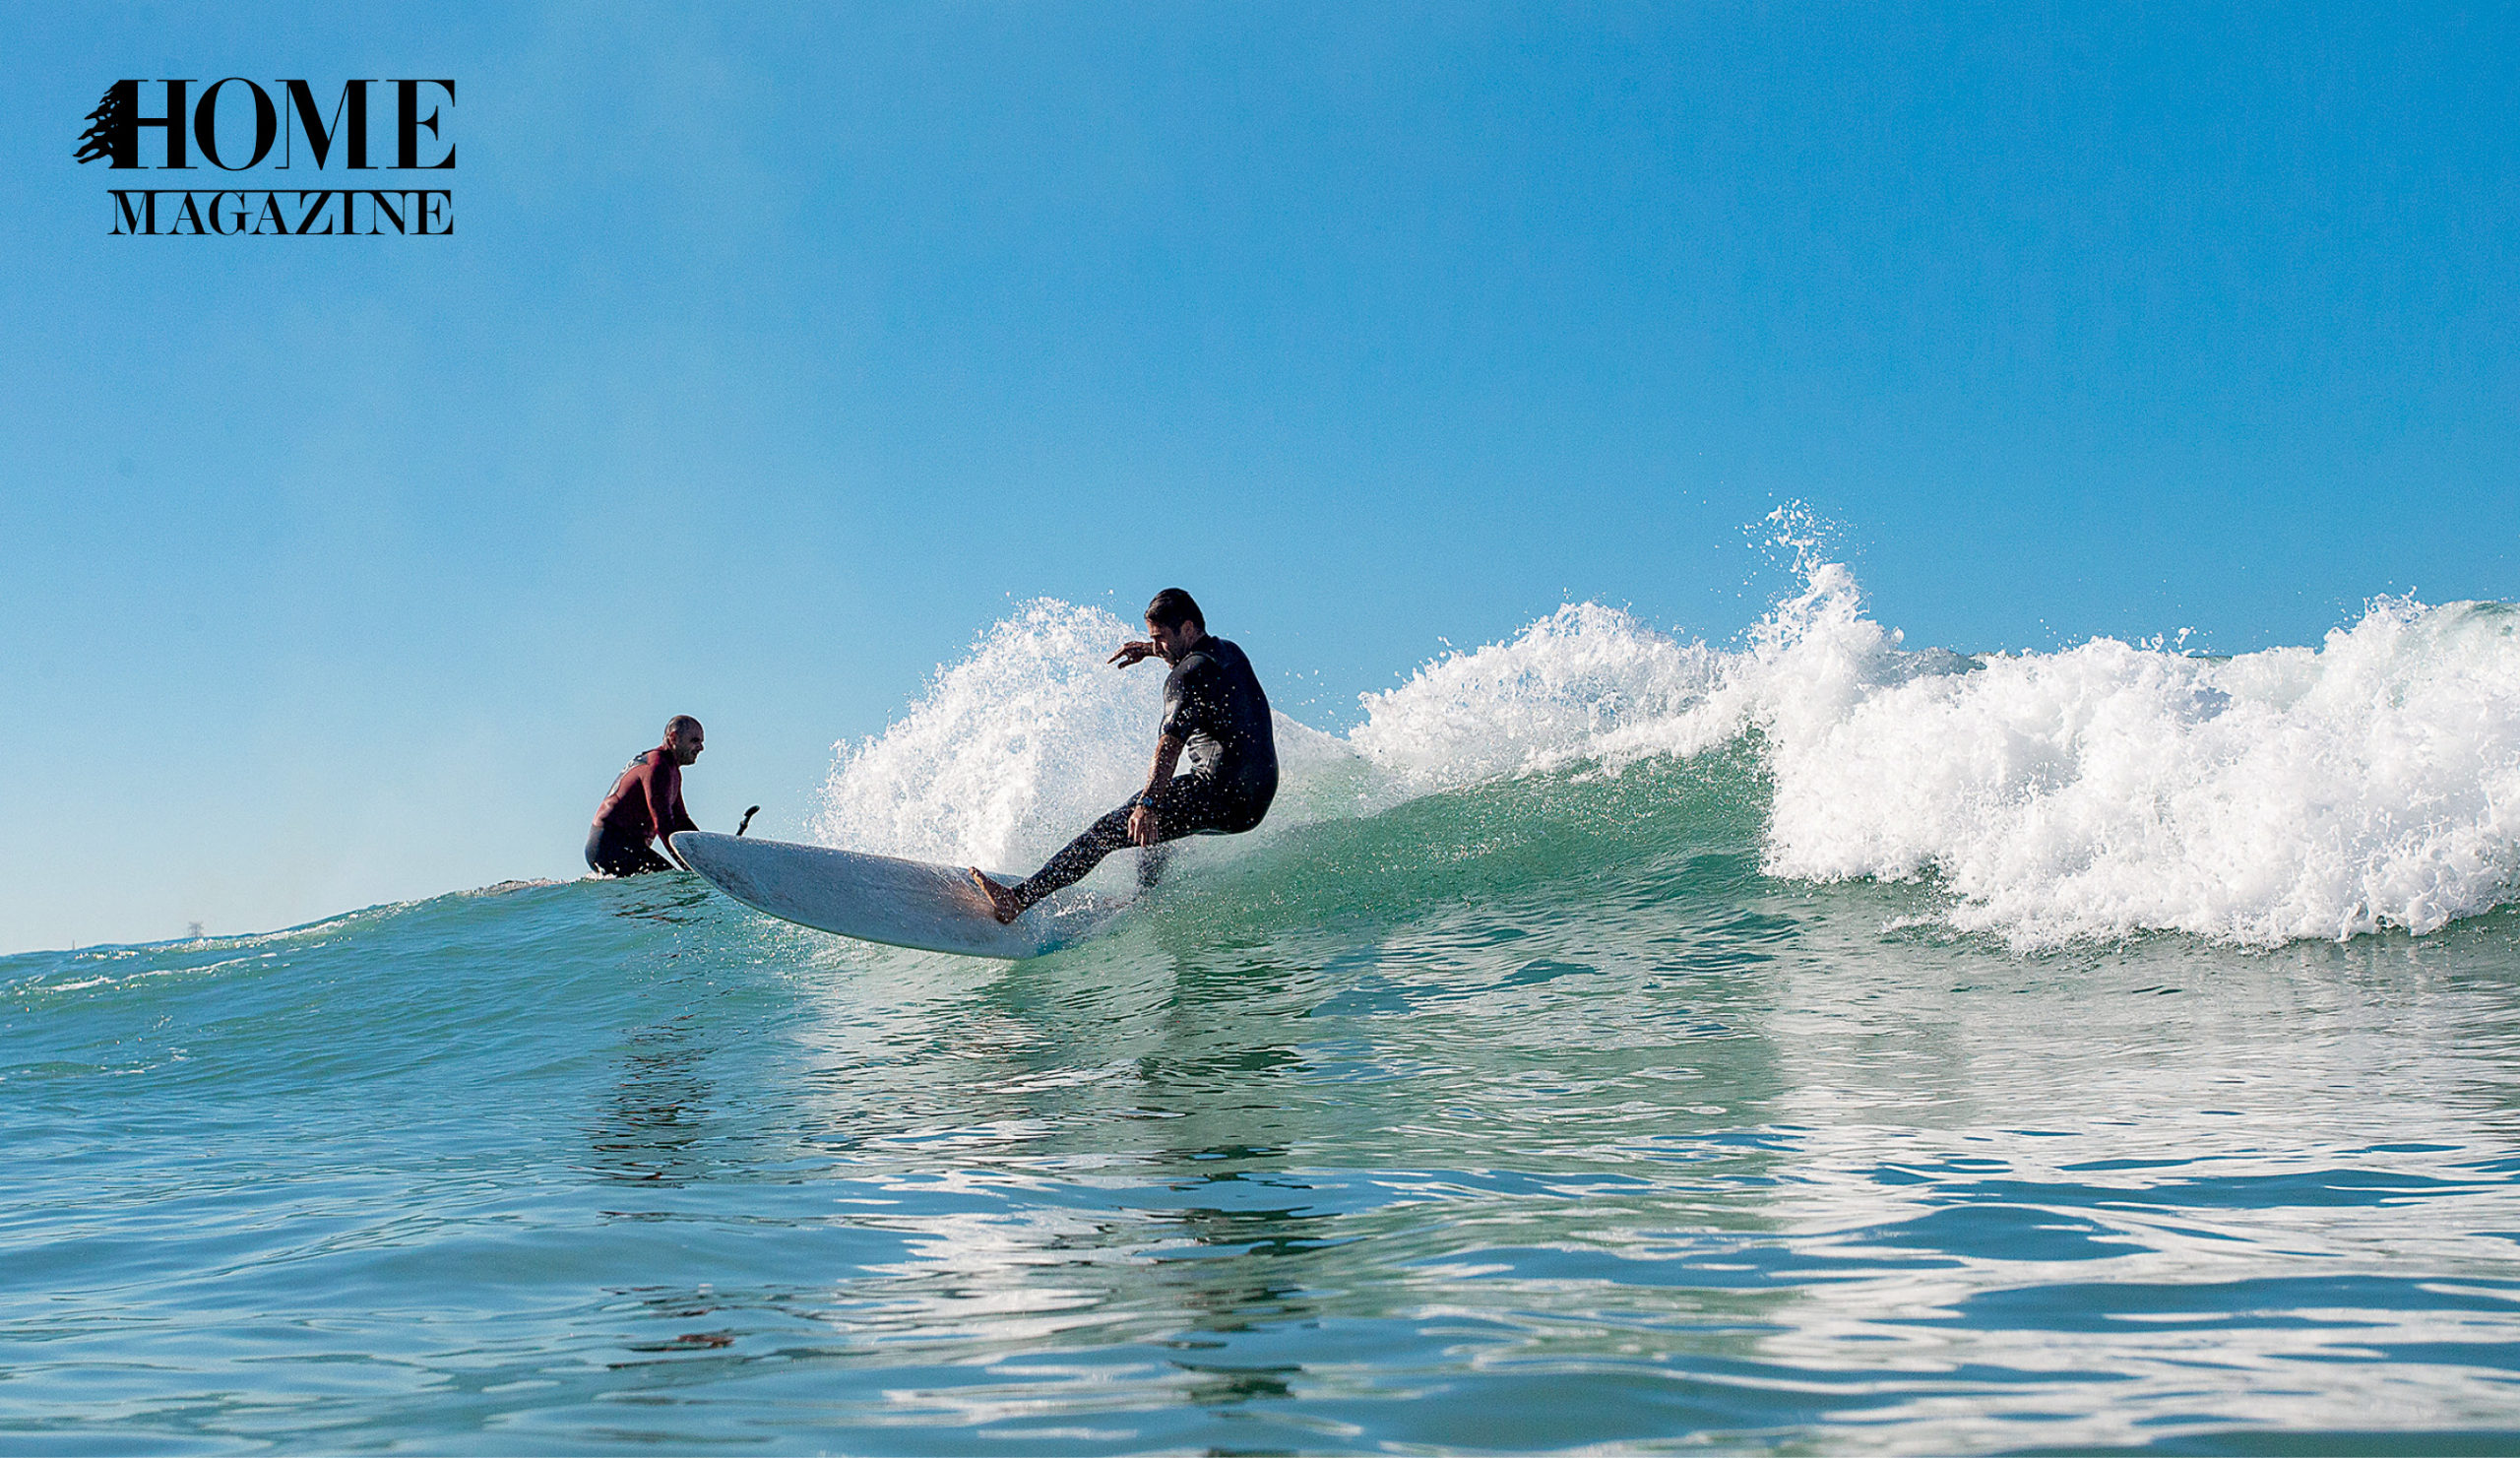 Two men riding waves of sea